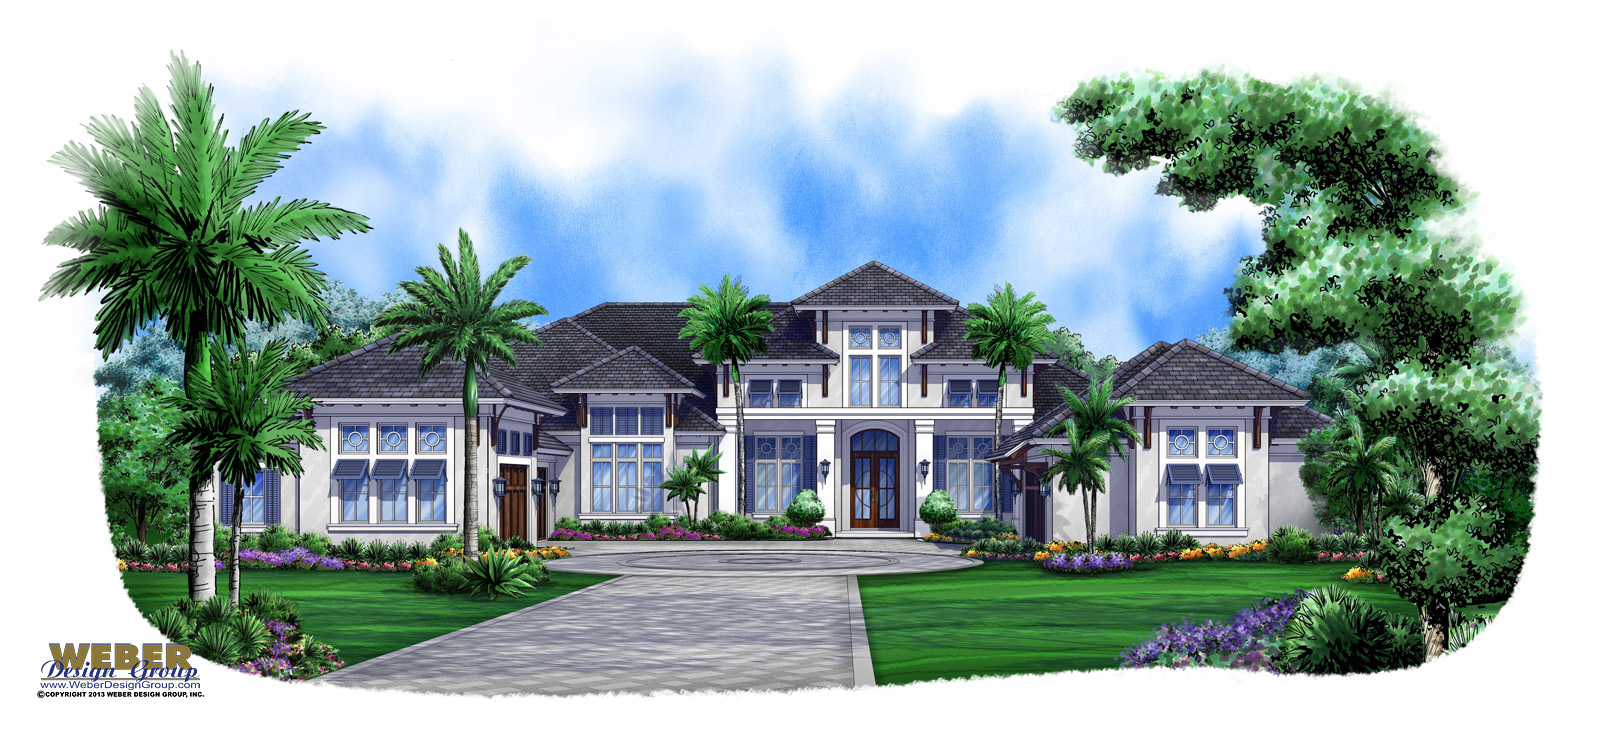 Caribbean Breeze Budron Homes